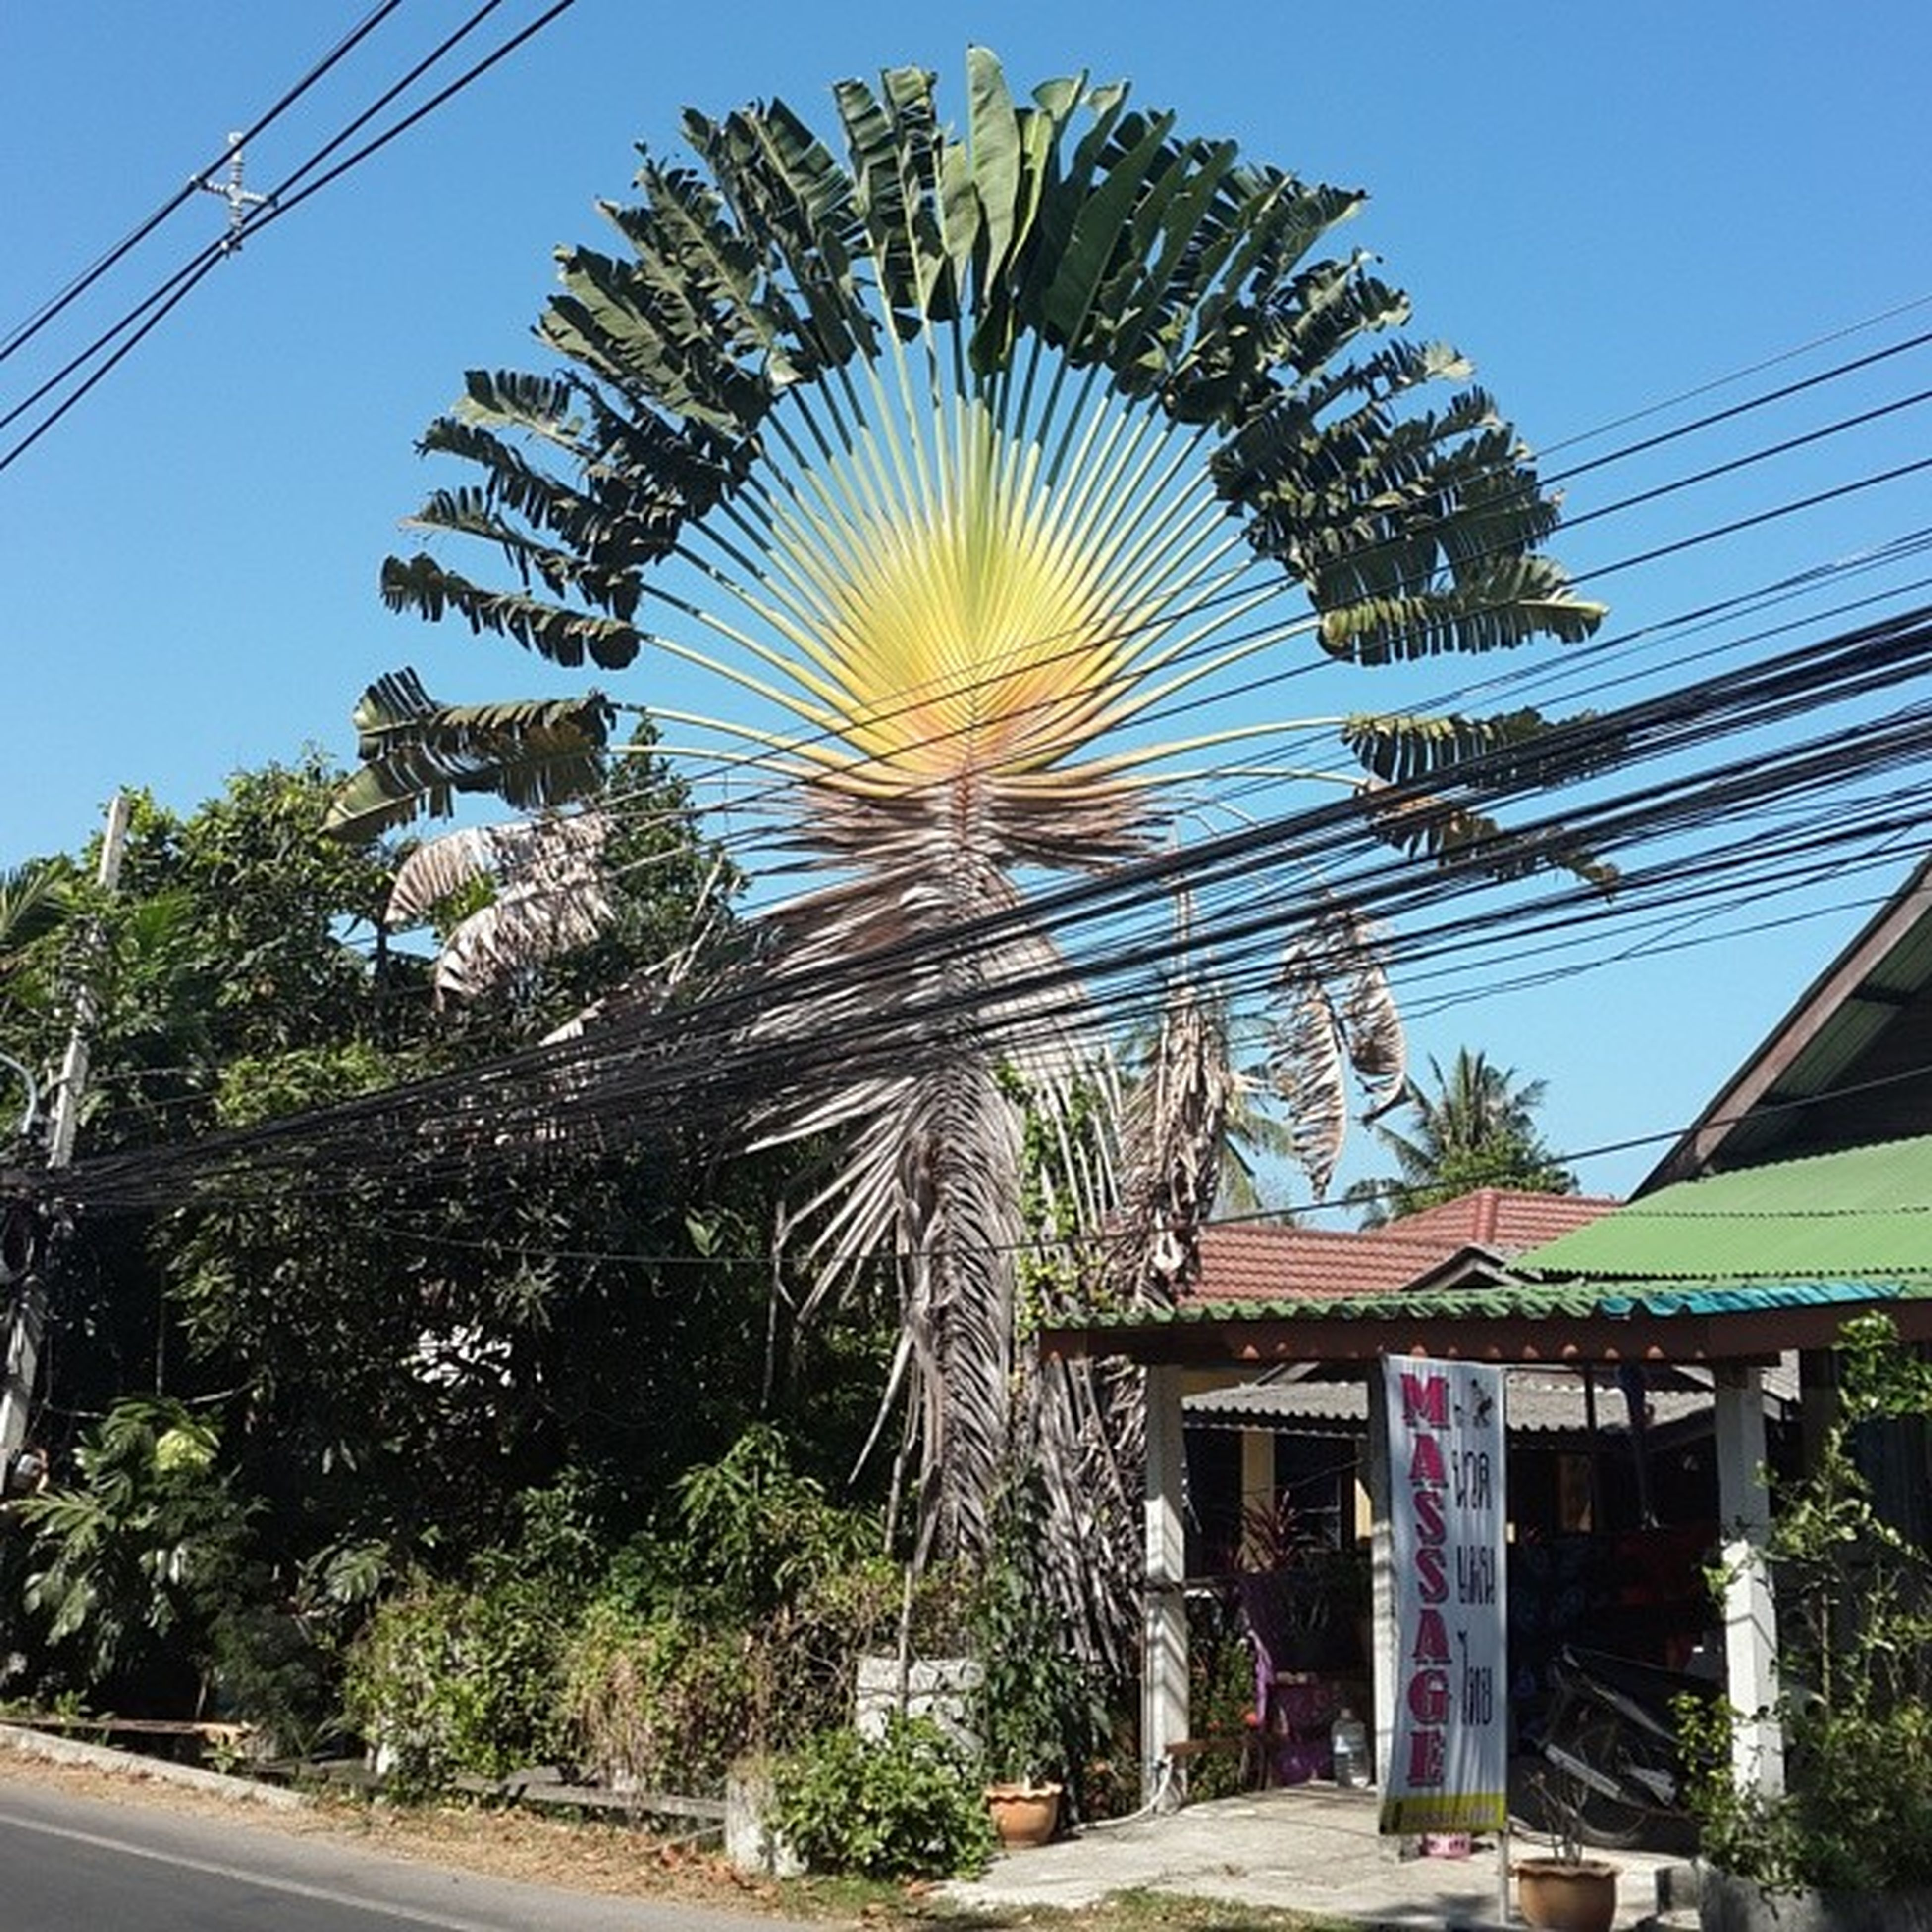 architecture, built structure, tree, low angle view, building exterior, blue, power line, sky, clear sky, growth, house, palm tree, day, cable, outdoors, plant, no people, electricity pylon, road, sunlight